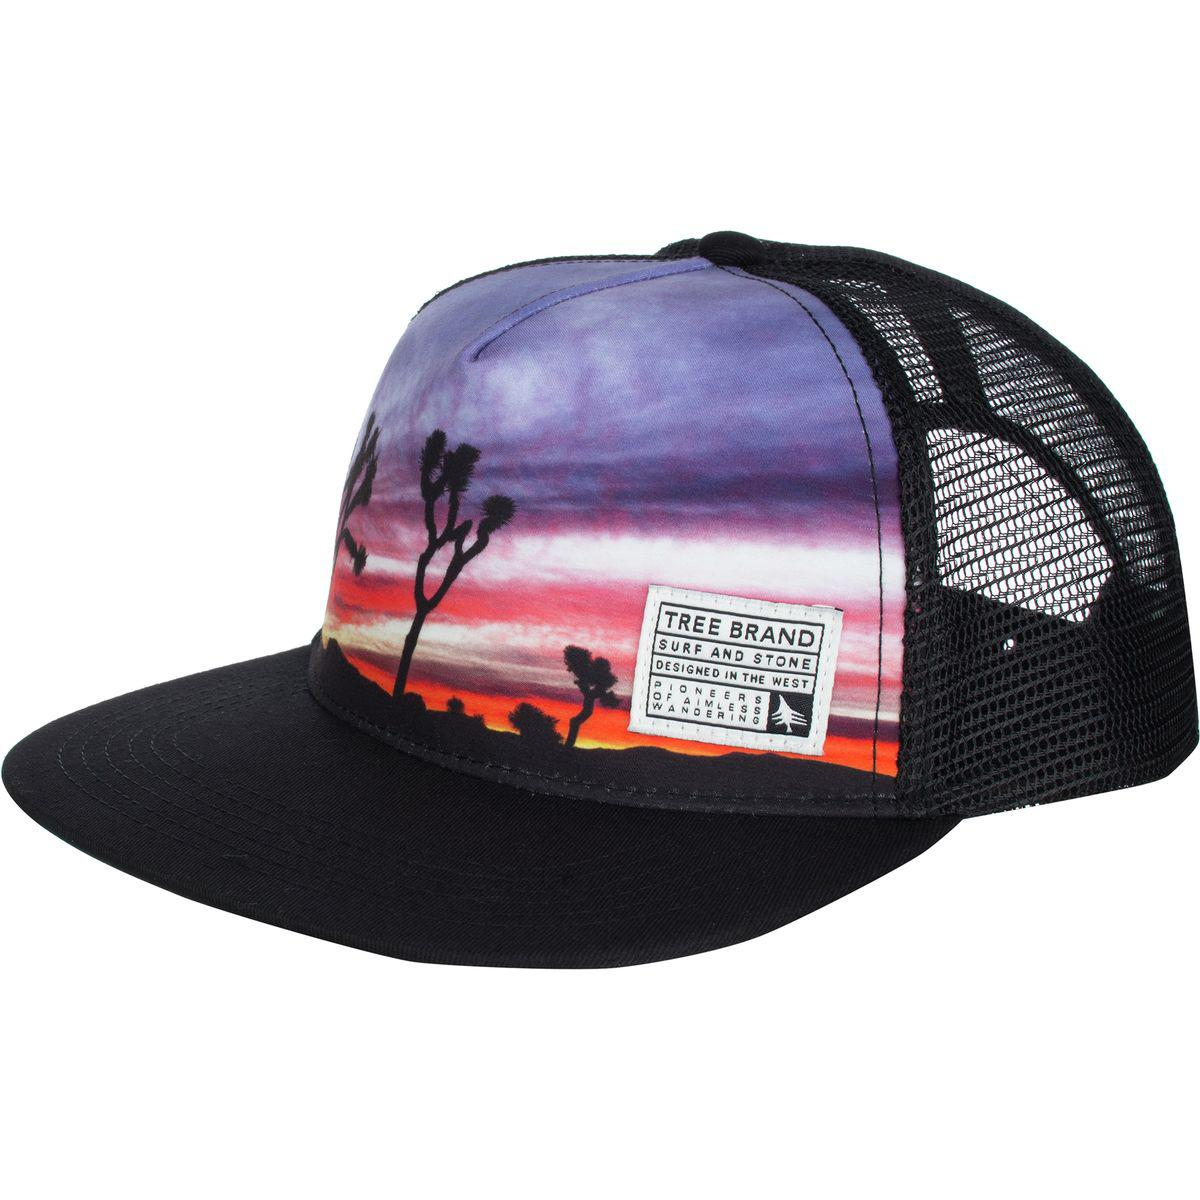 Lyst - HippyTree Palmdale Trucker Hat in Black for Men cc69122ecba2